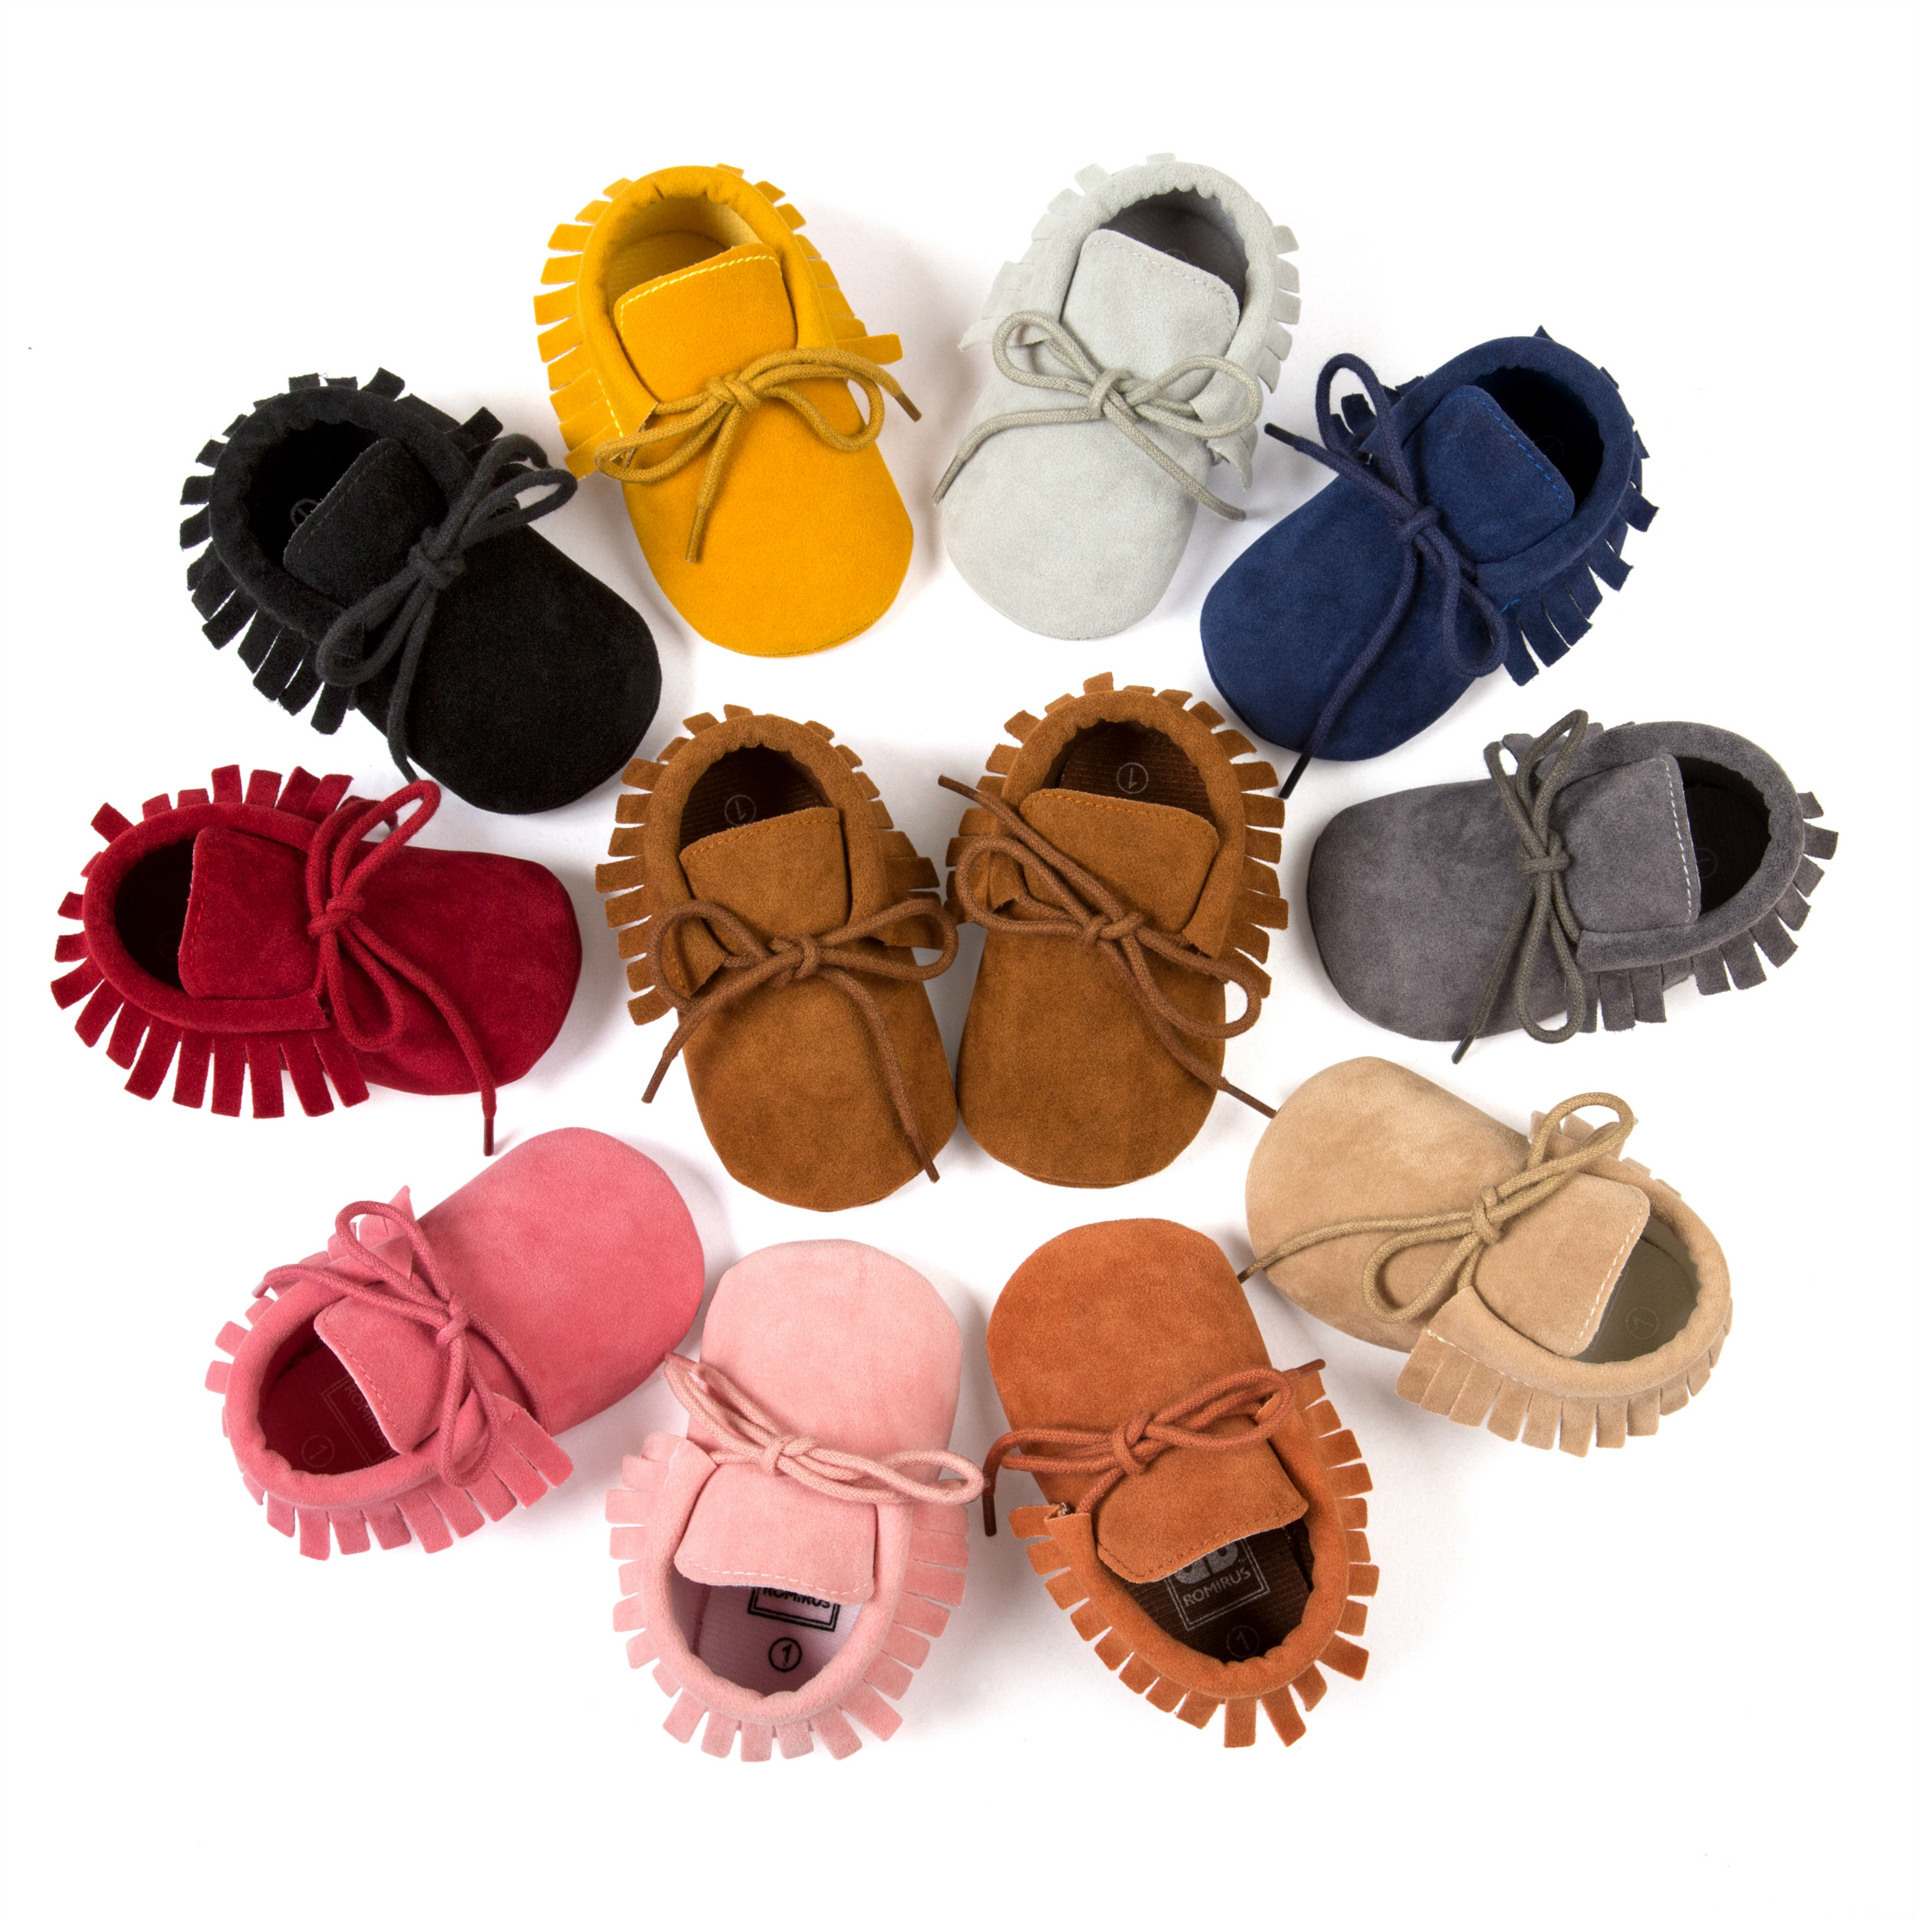 d5734e5e03e Baby Moccasin Baby First Walkers Soft Bottom Non-slip Fashion Tassels Newborn  Babies Shoes 14-colors PU Leather Prewalkers Boot